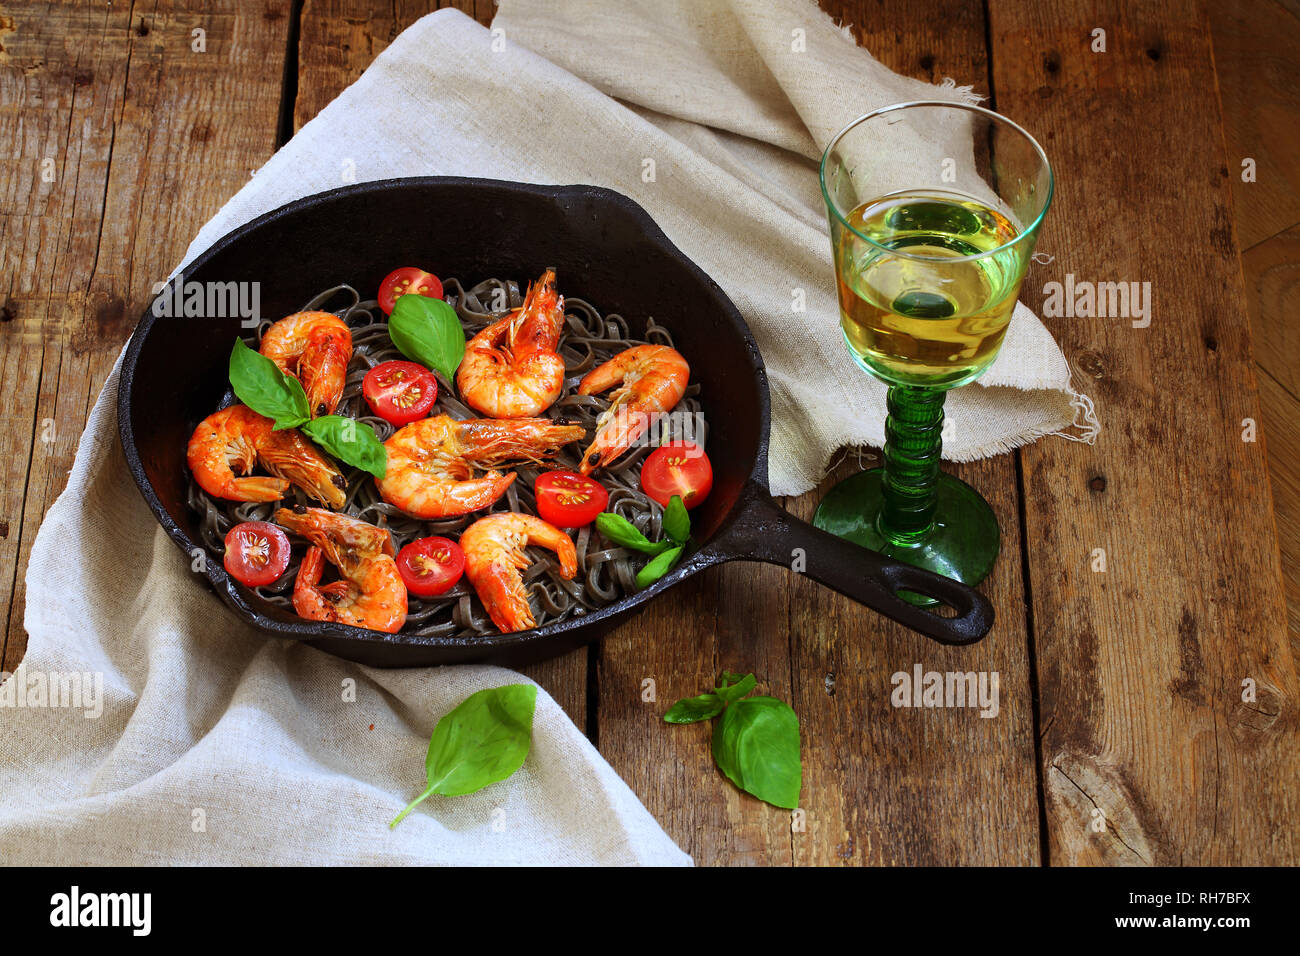 Still life with grilled shrimps and white wine on wooden background Stock Photo